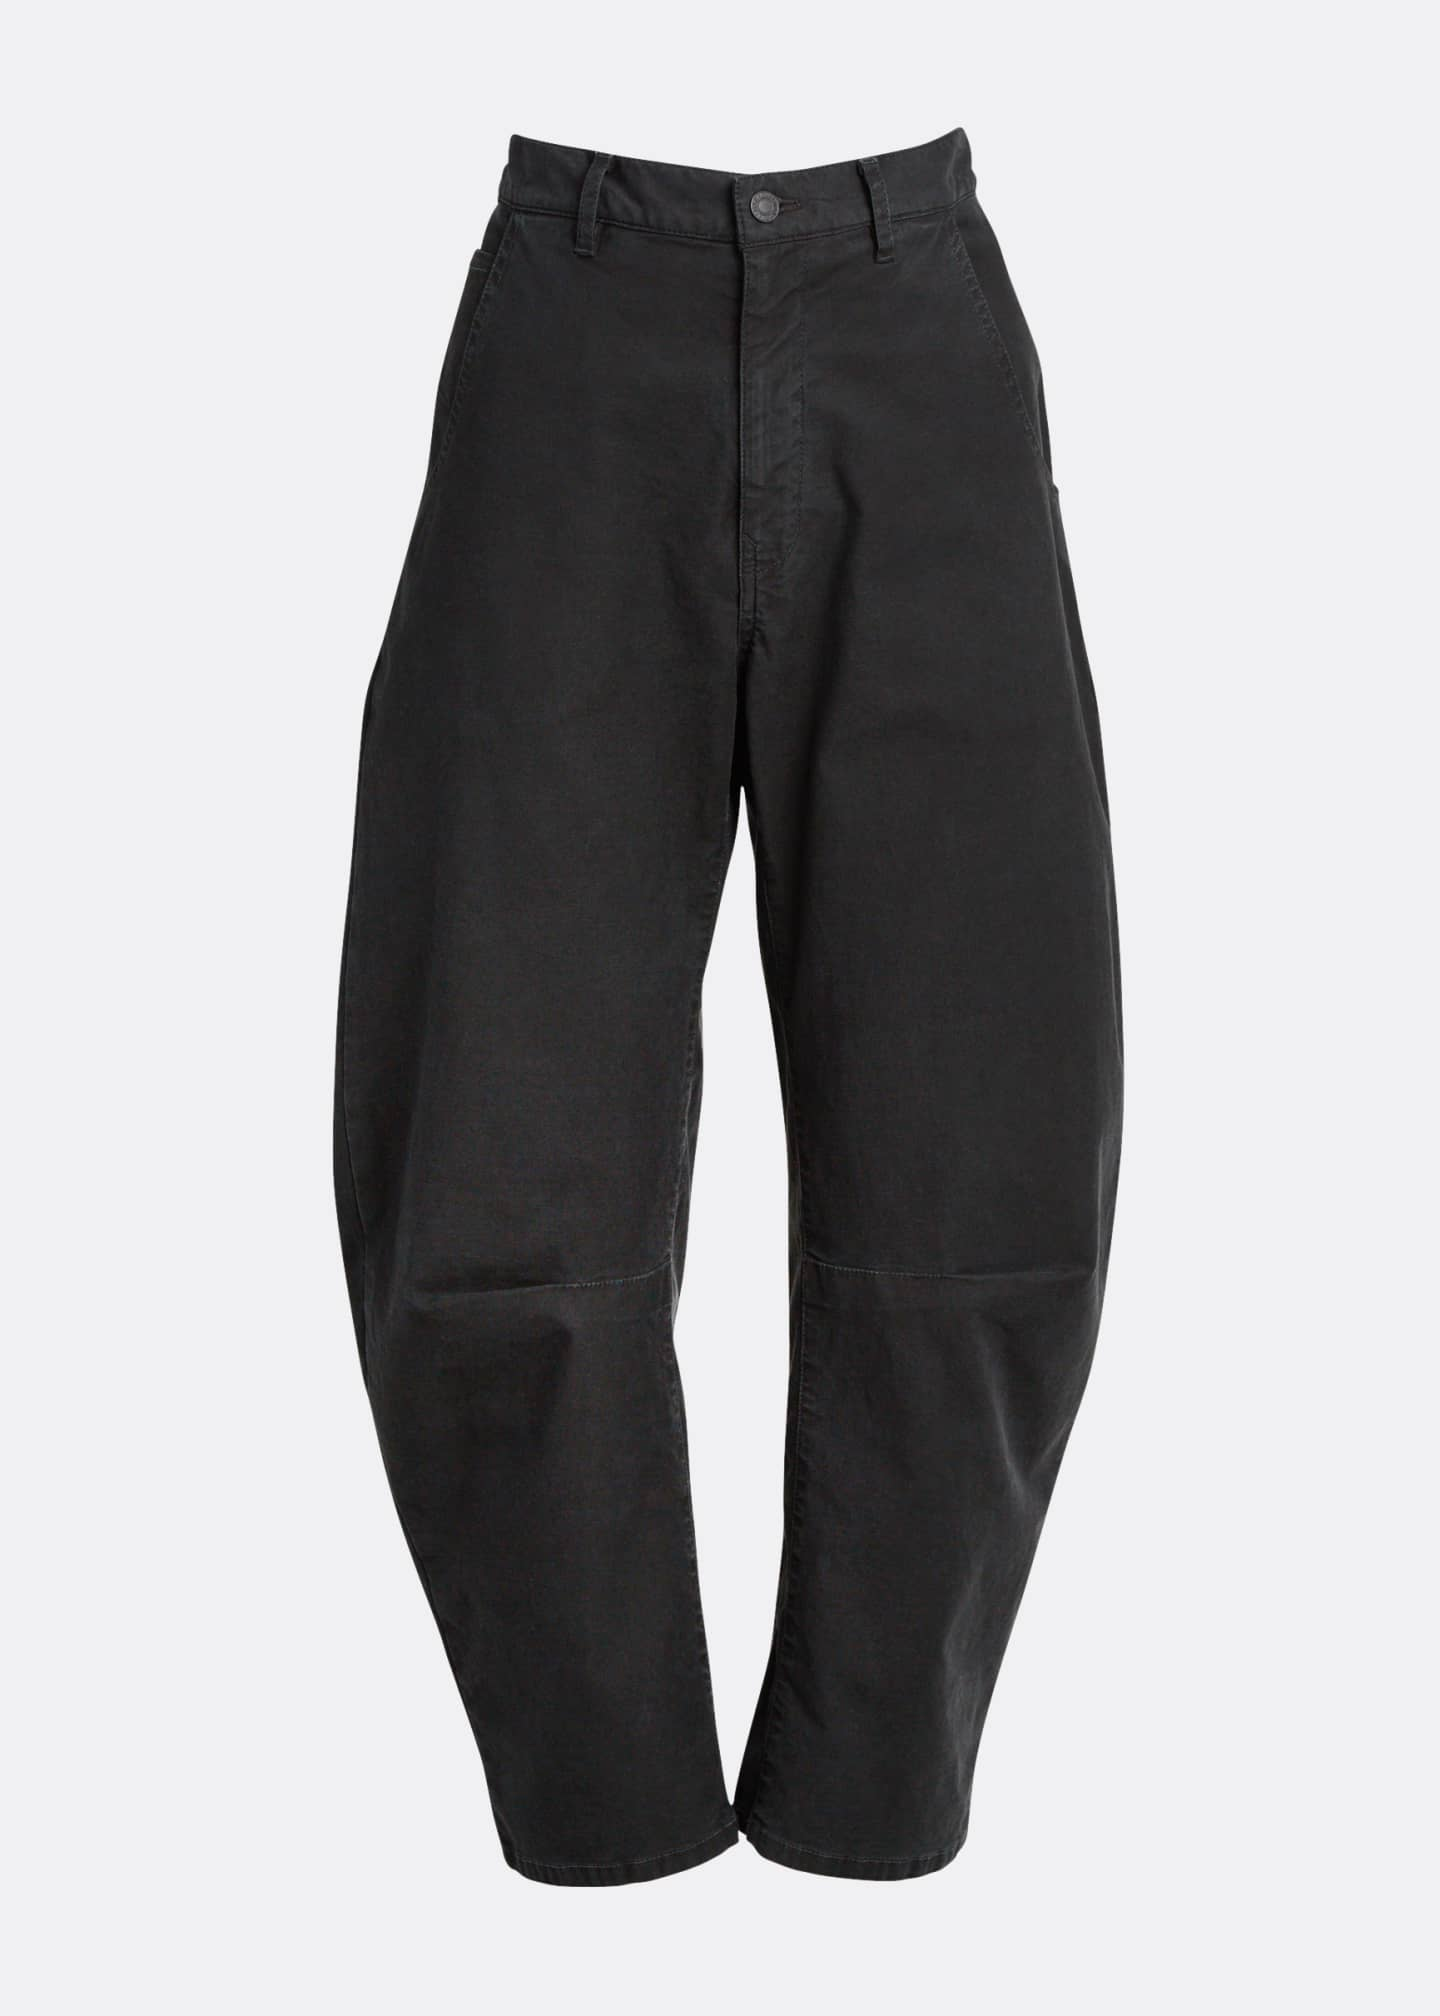 Image 5 of 5: Emerson Cropped Pants